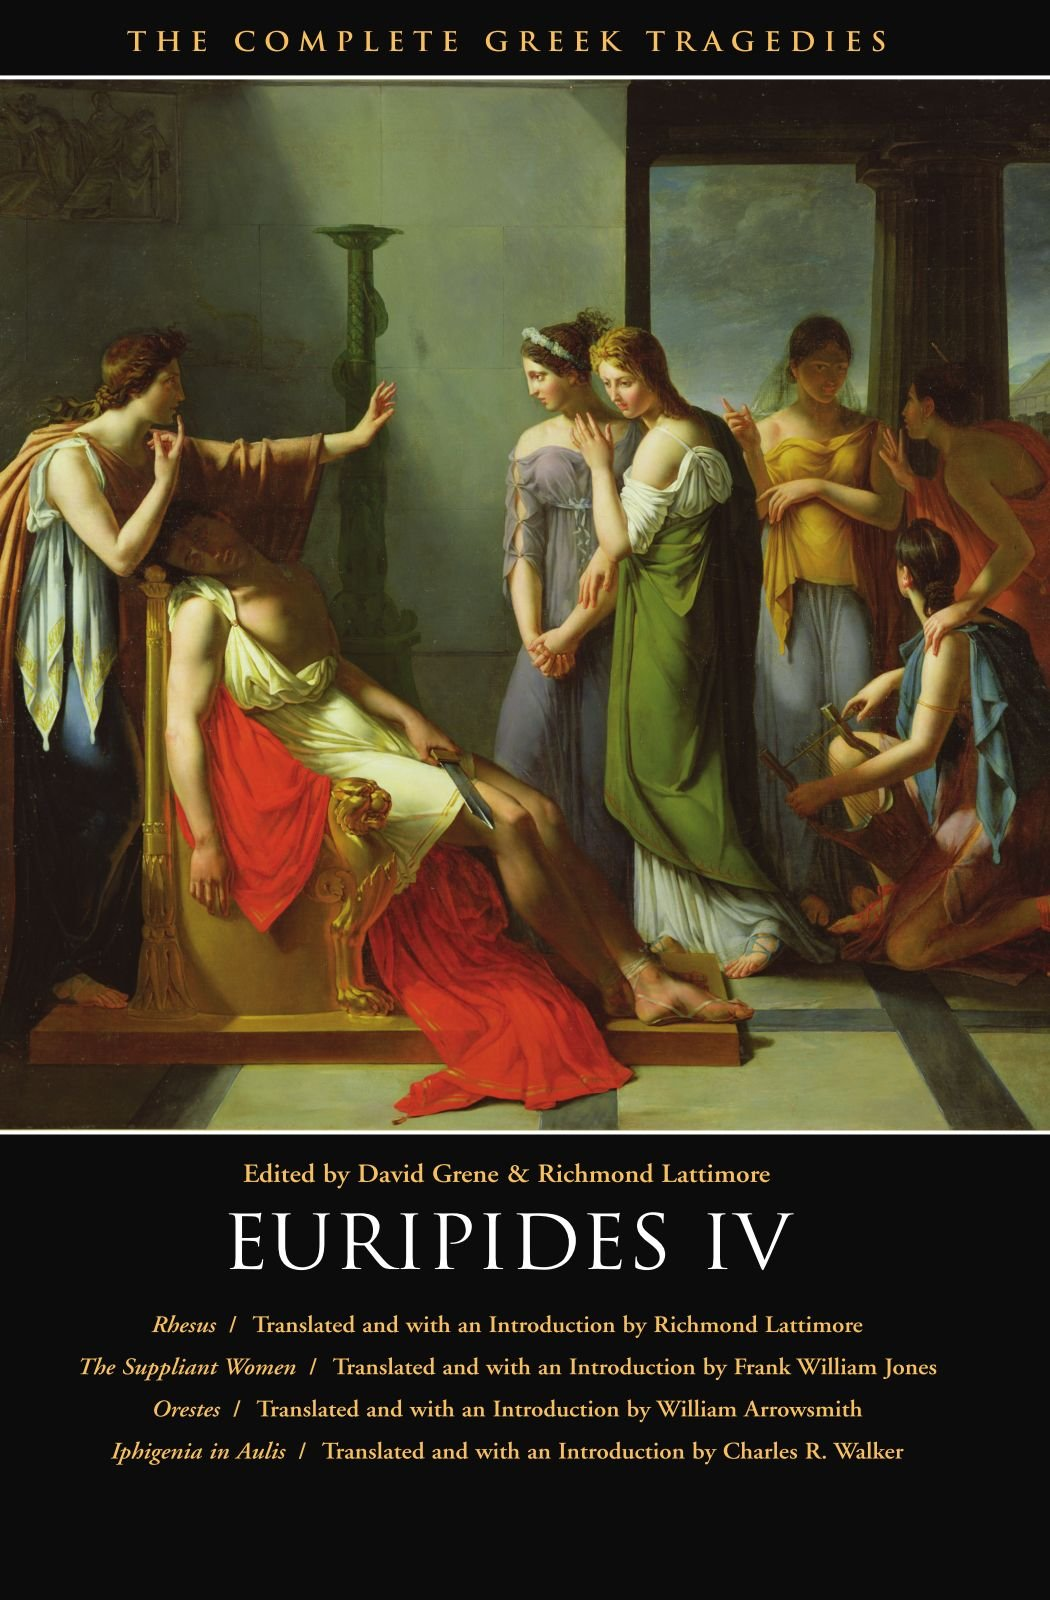 Euripides IV: Rhesus / The Suppliant Women / Orestes / Iphigenia in Aulis (The Complete Greek Tragedies) (Vol 6)